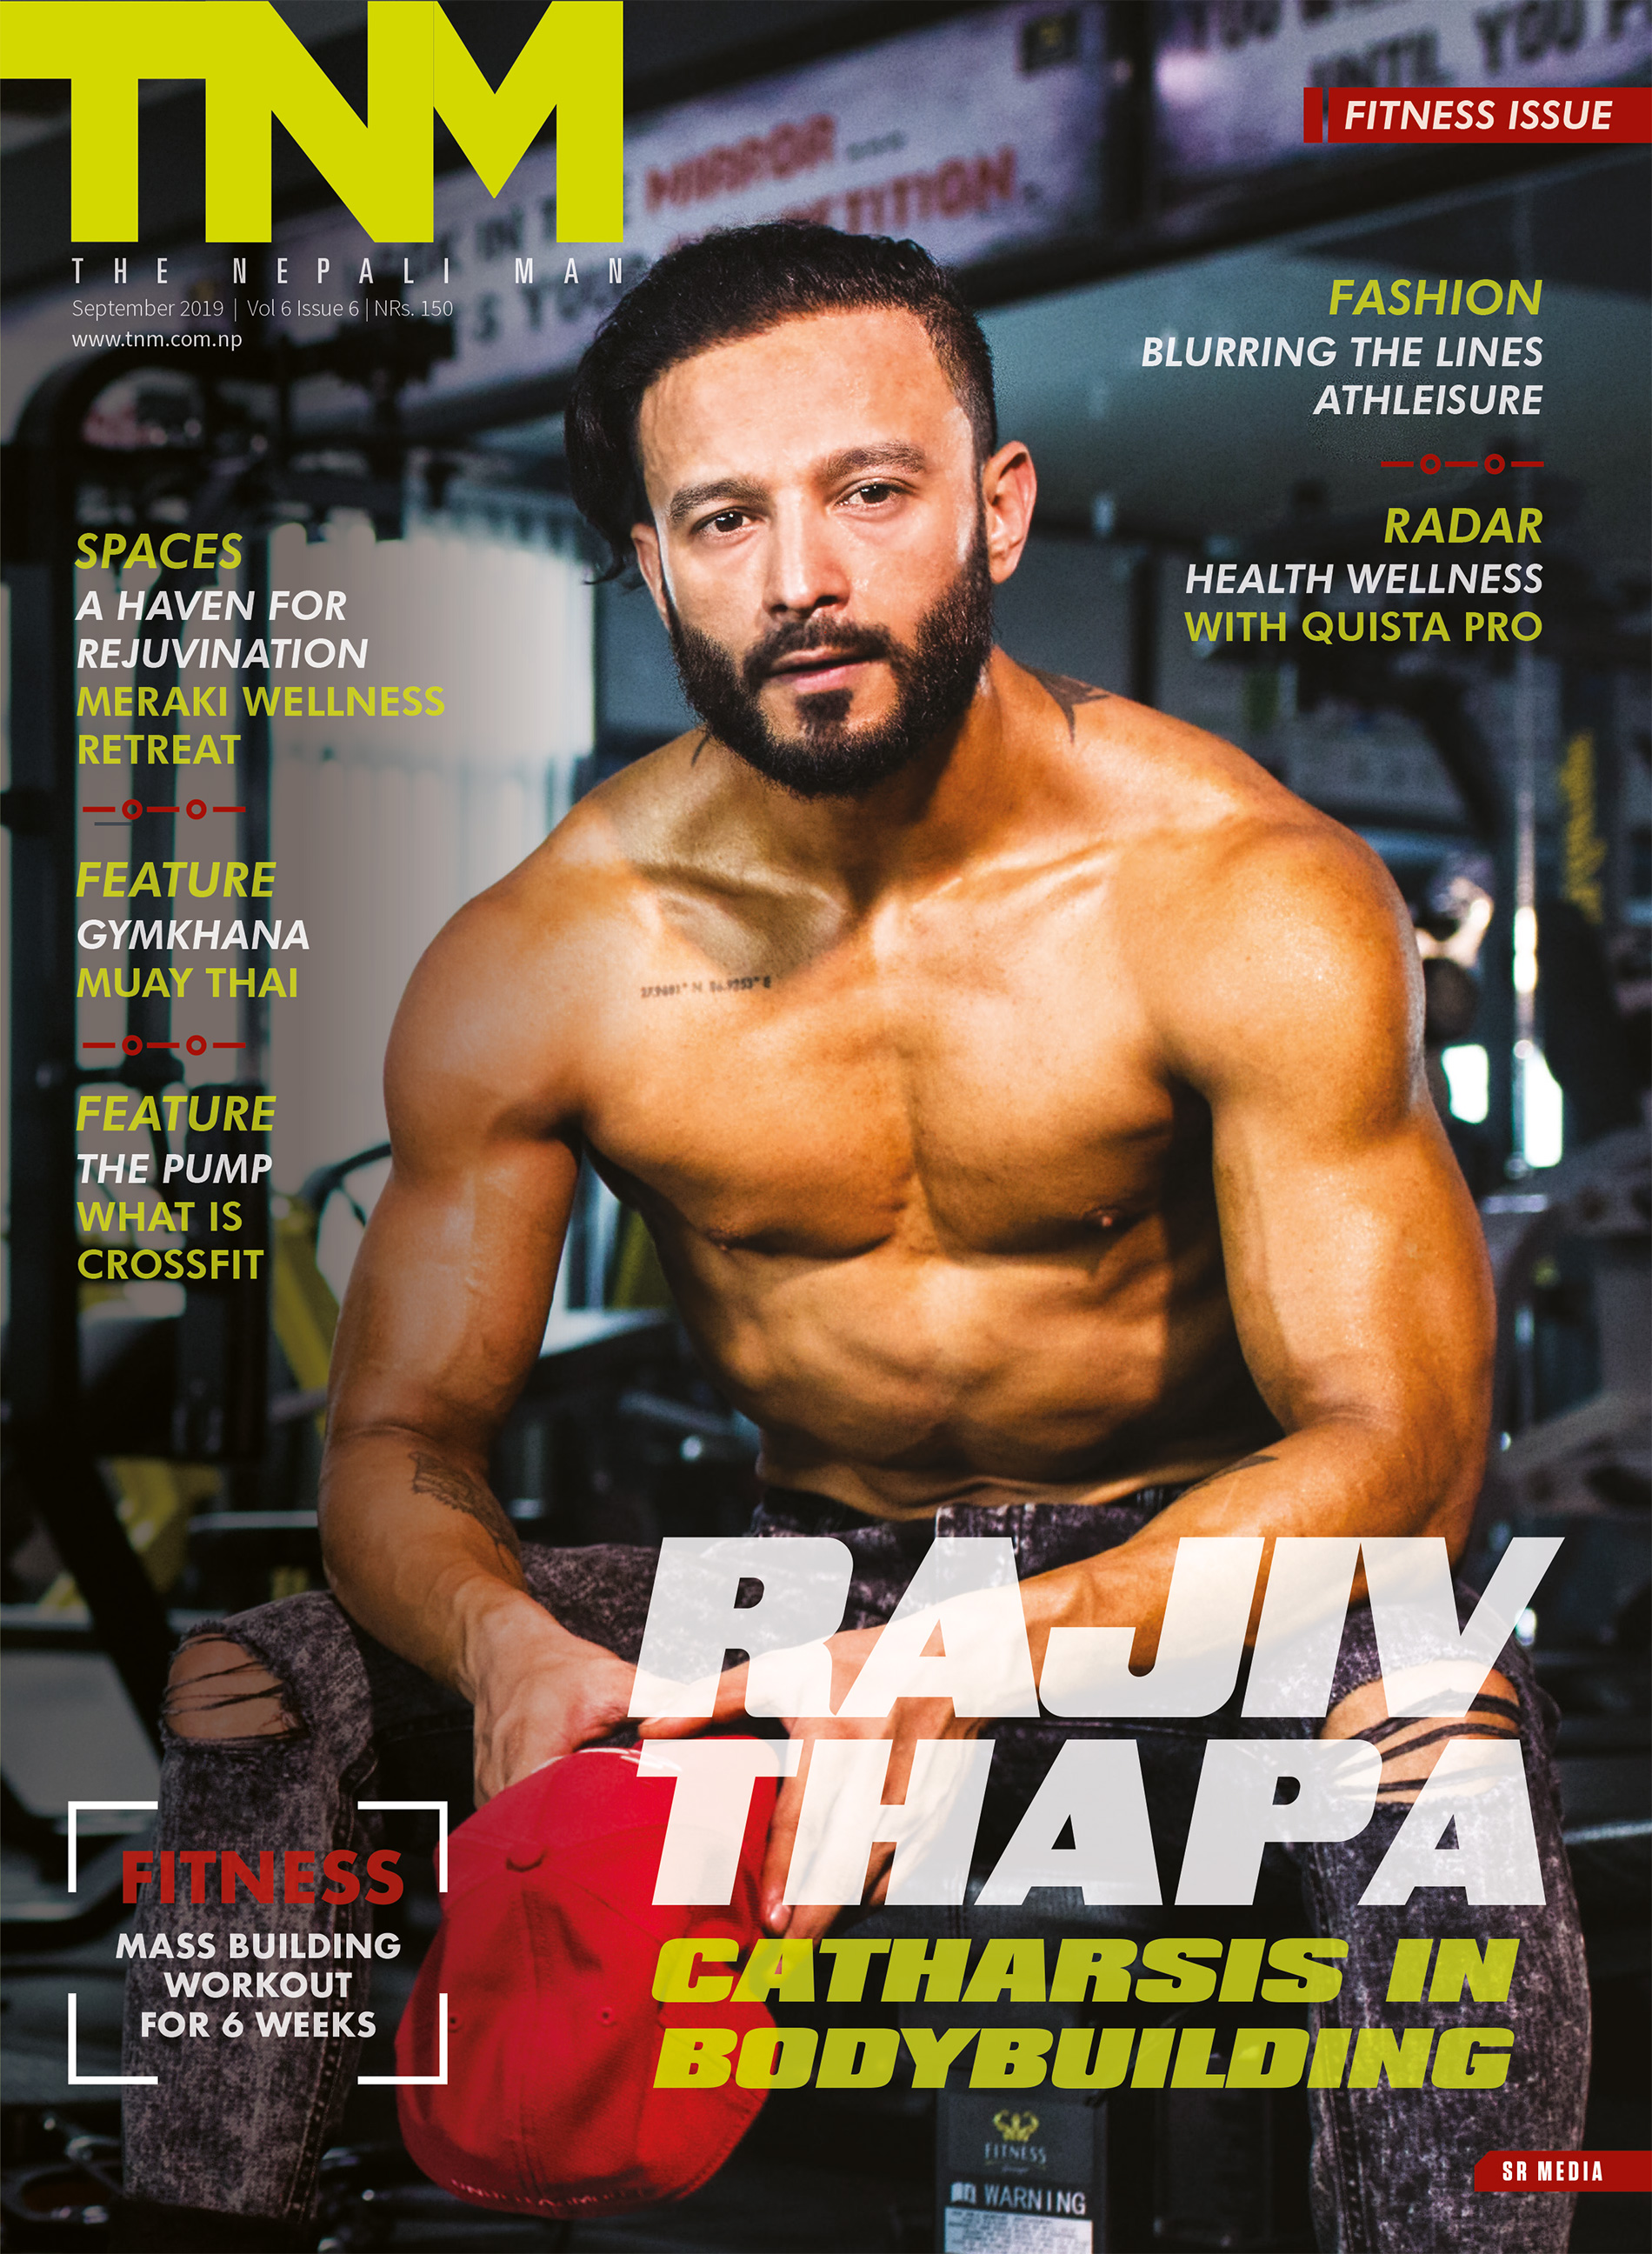 Volume 6 Issue 6: Rajiv Thapa